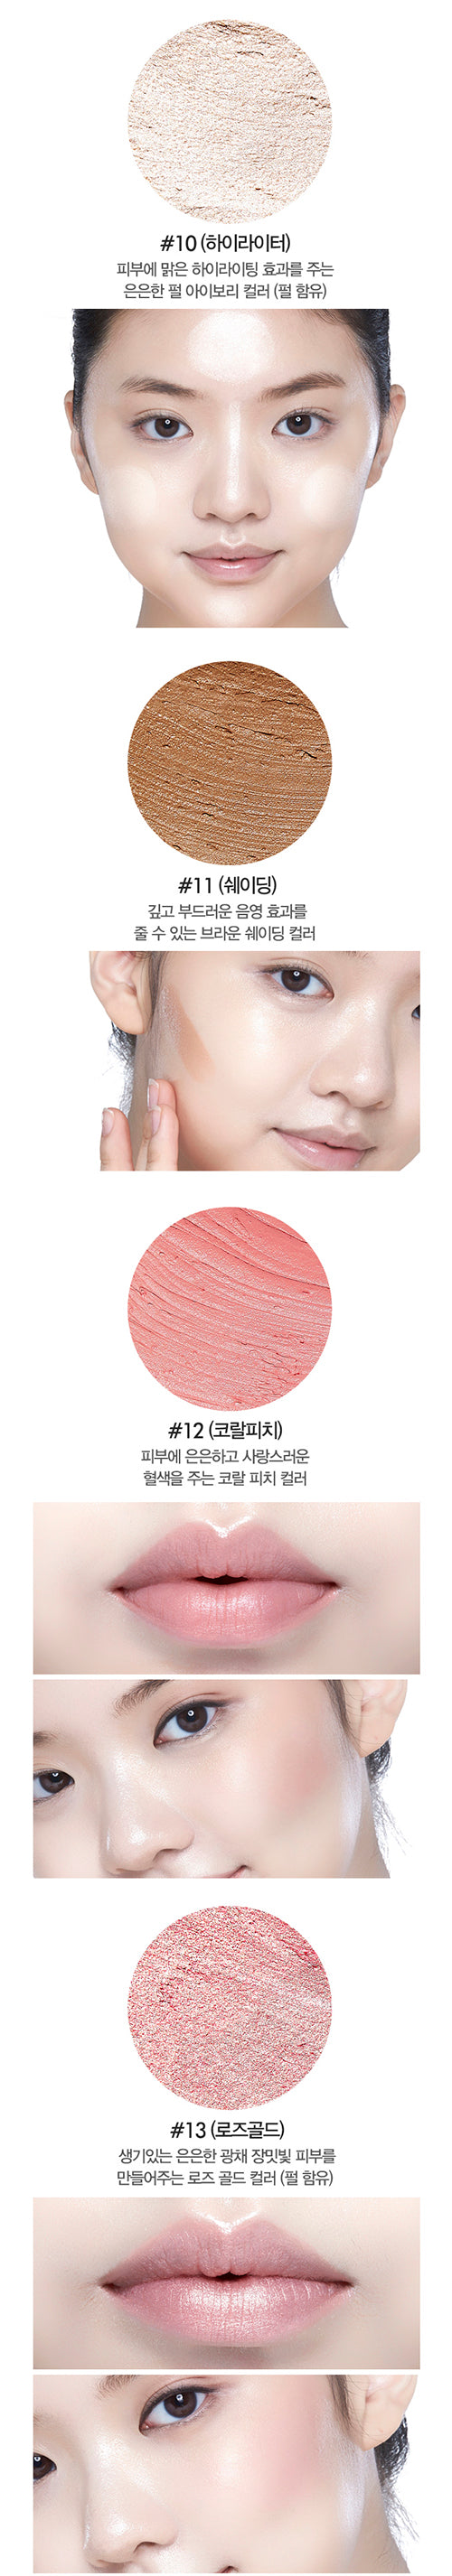 Etude House Play 101 Stick Blusher #12 Coral (EXP 2020-12) - oo35mm